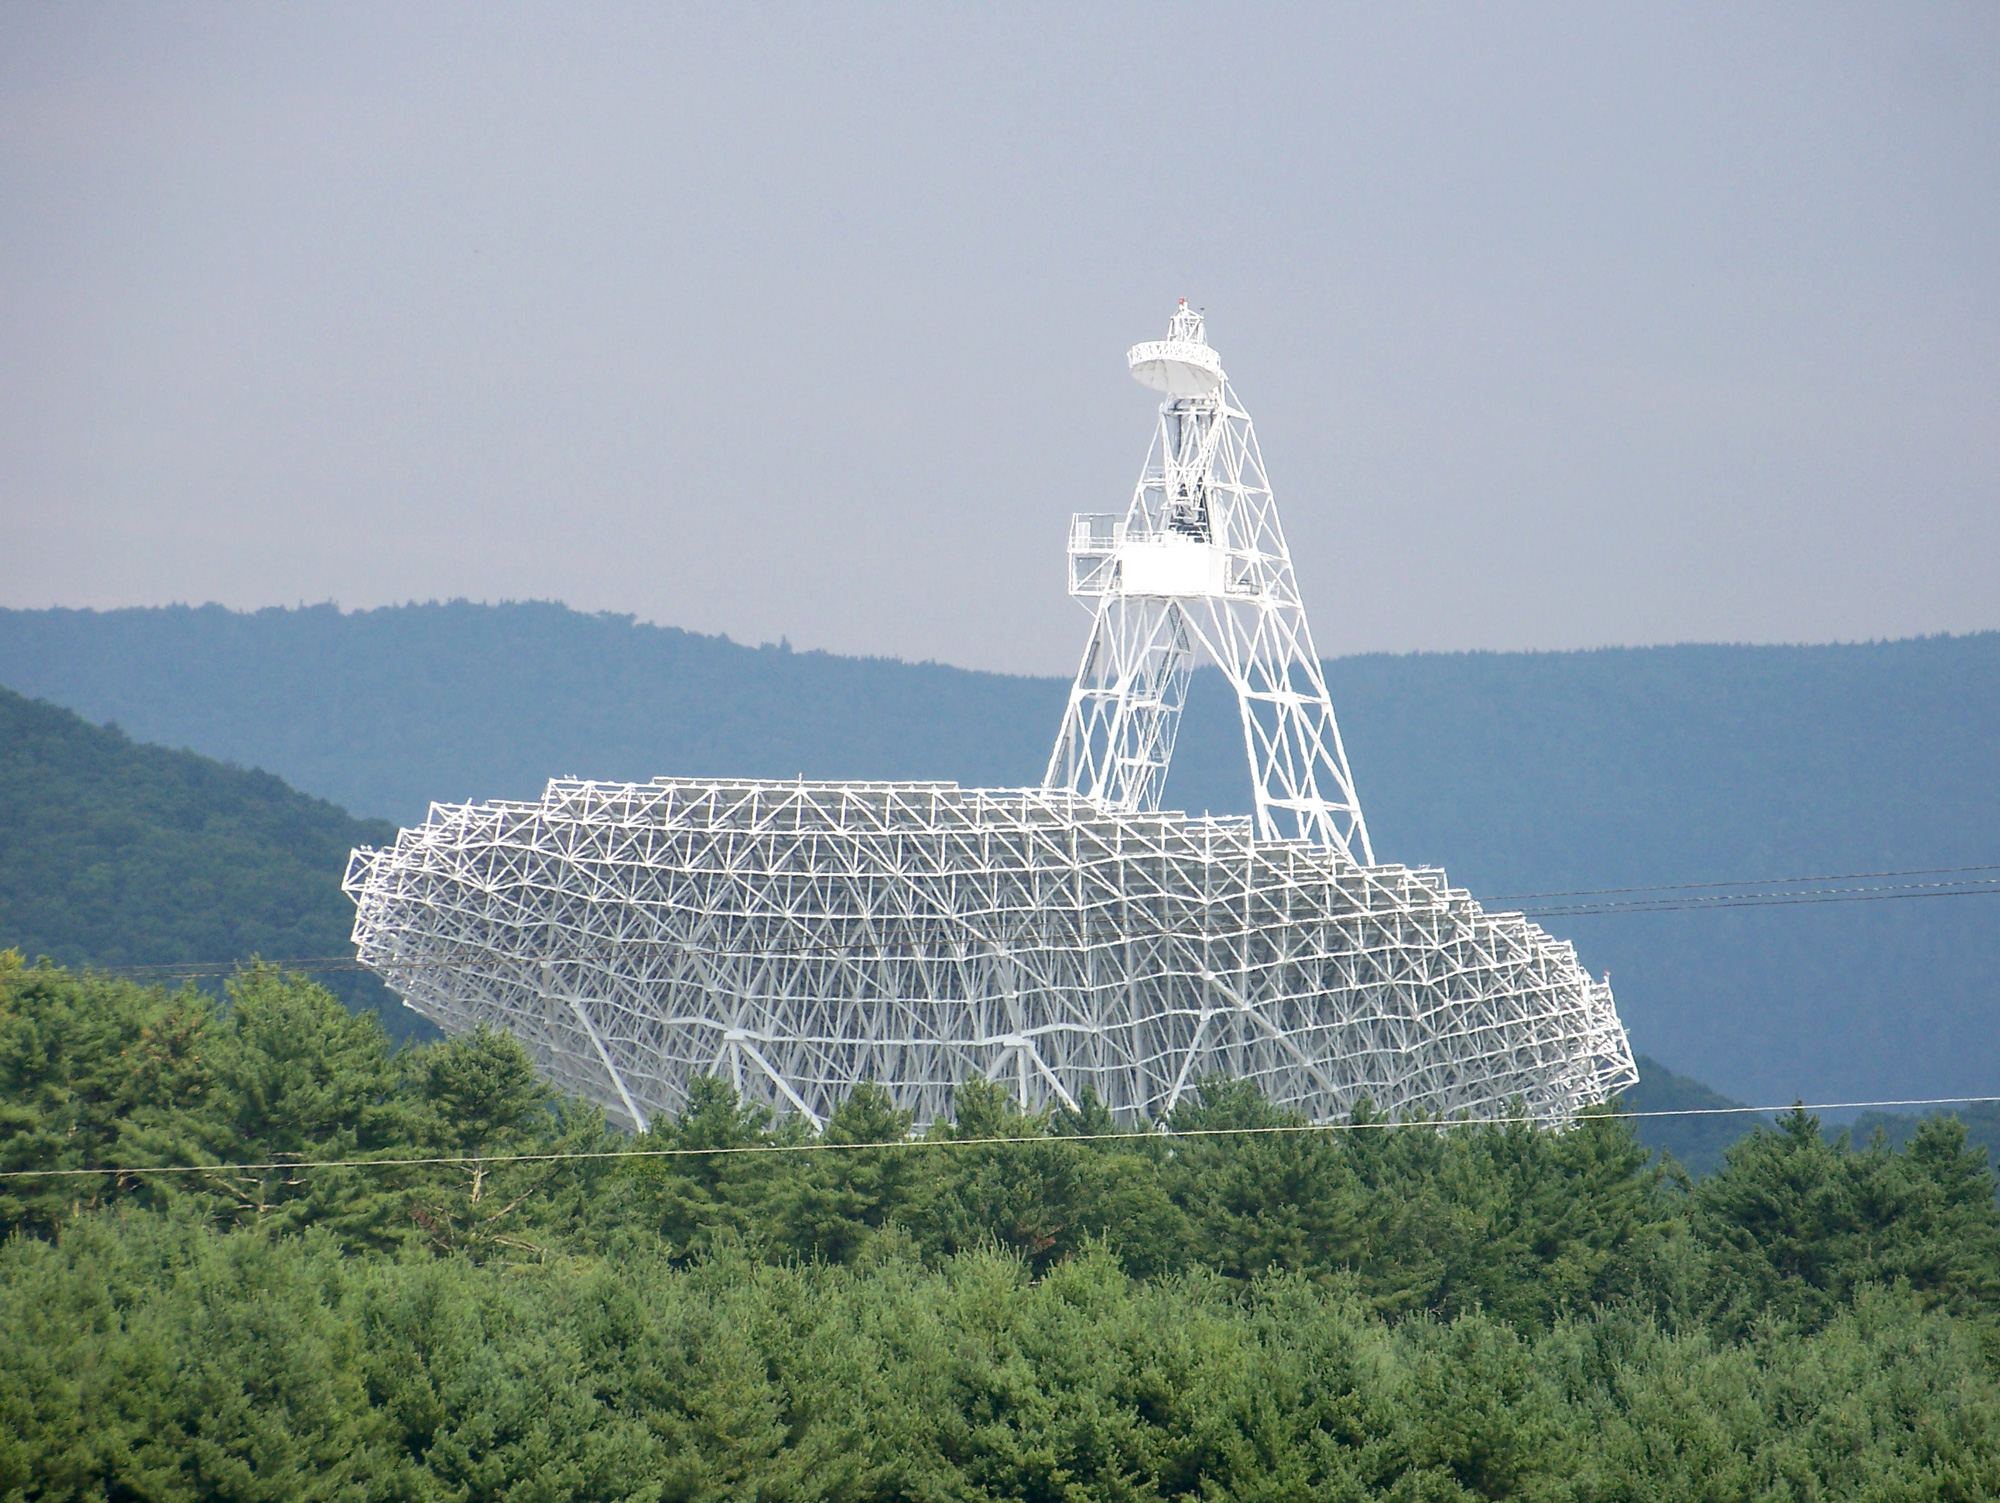 The large dish of a radio telescope pointed toward the sky against a forest landscape.